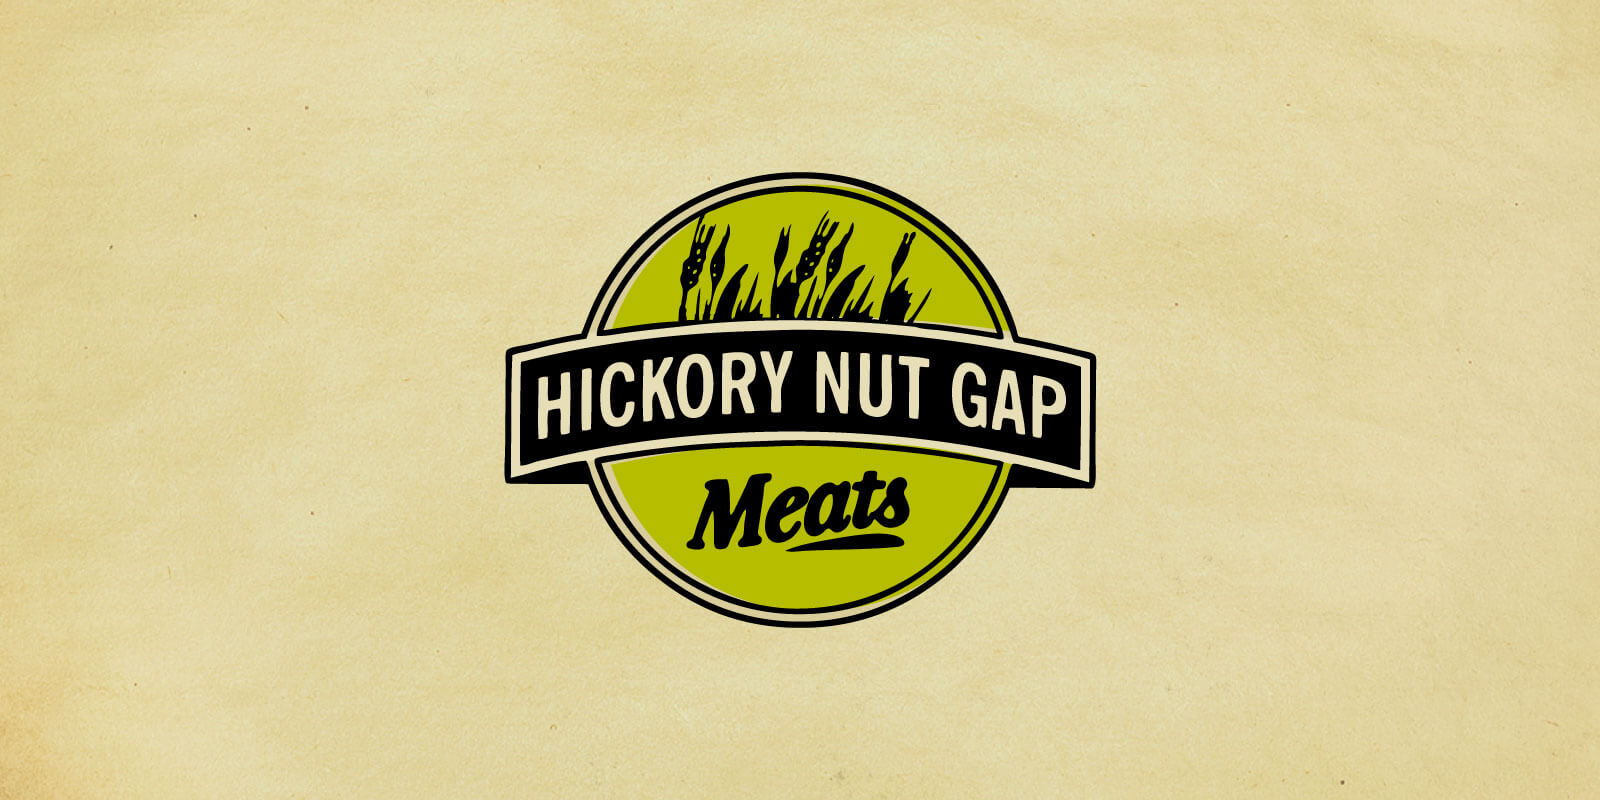 Hickory Nut Gap Meats logos in green and black shown against parchment paper background.